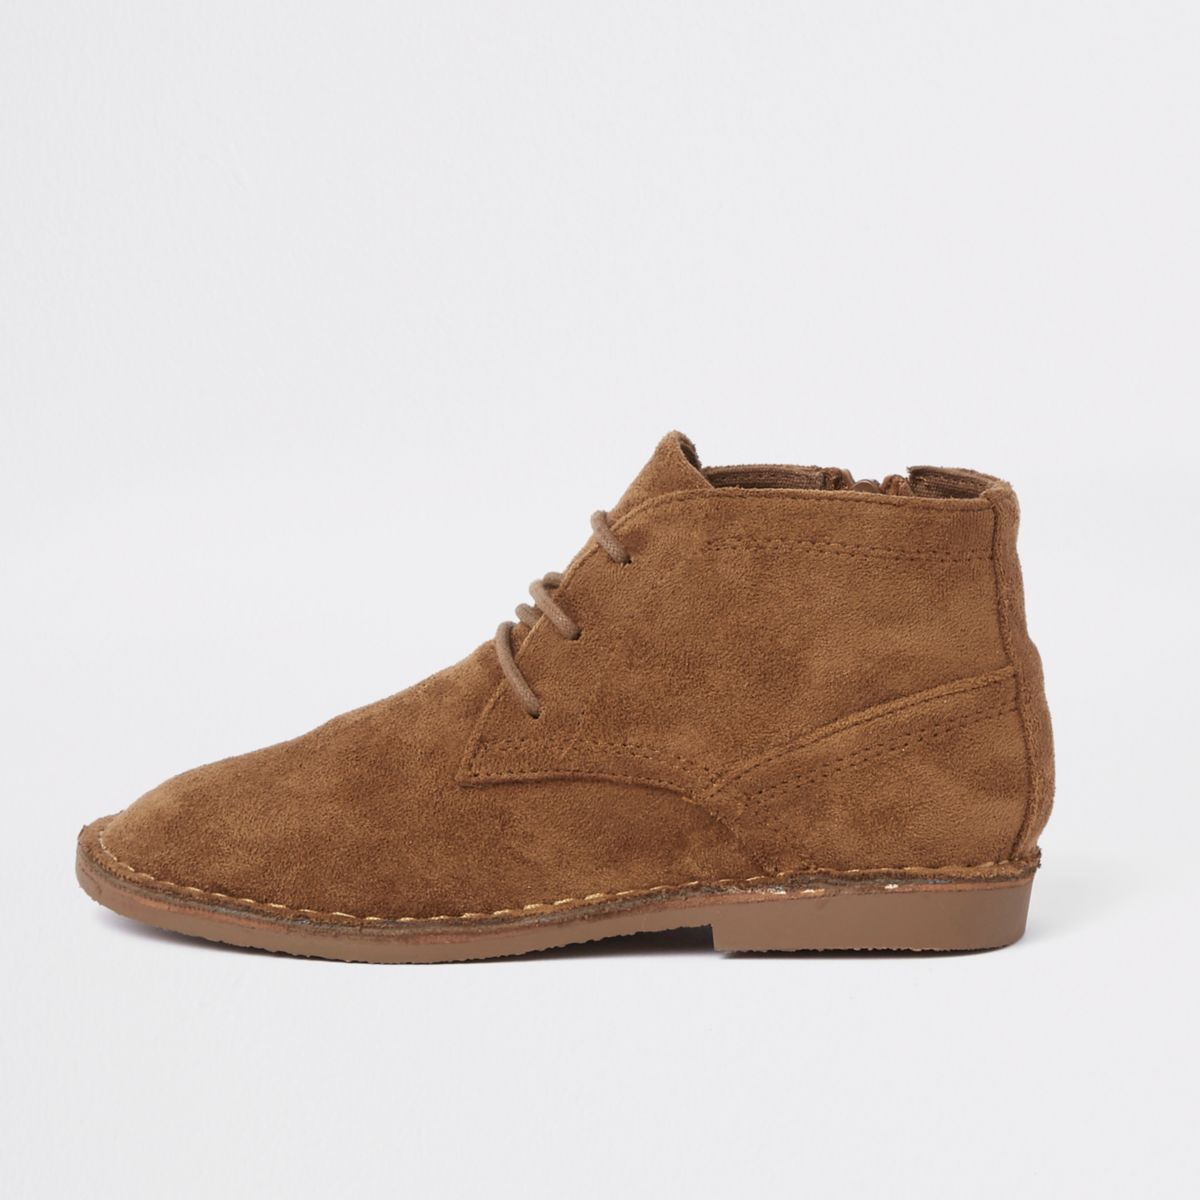 Boys brown faux suede desert boots